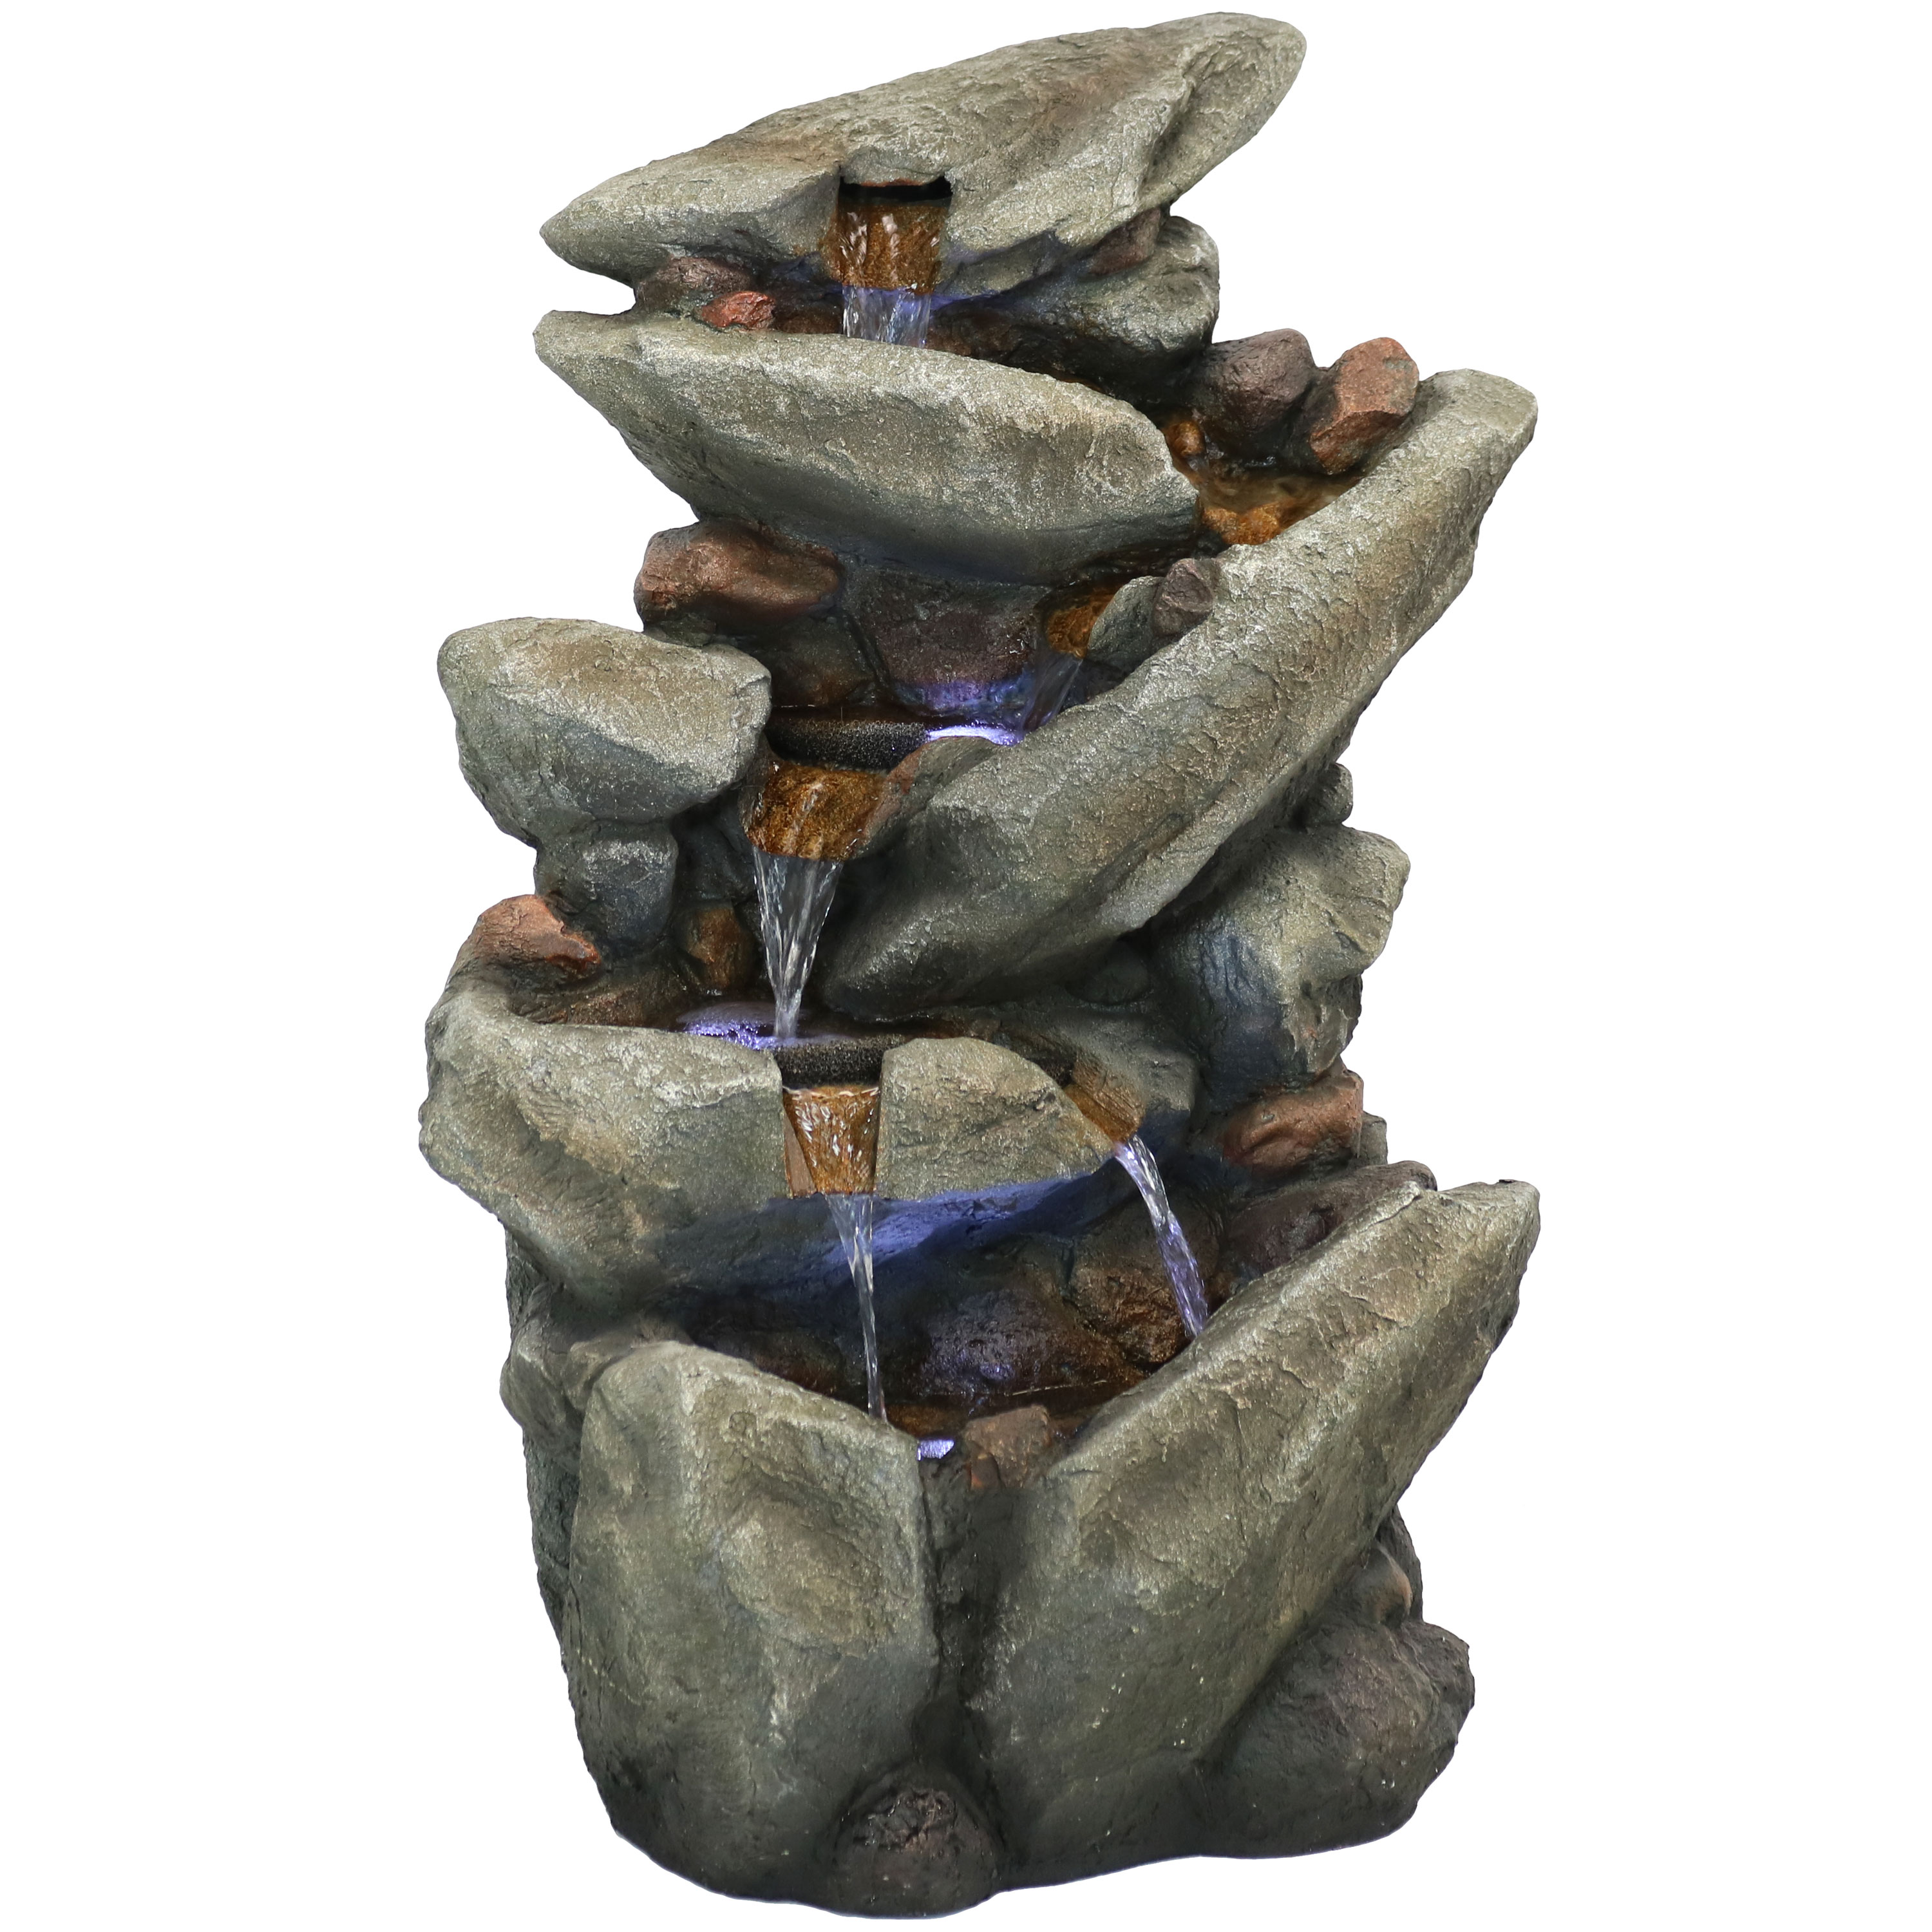 Streaming Tilted Rocks Water Fountain Led Lights Submersible Pump